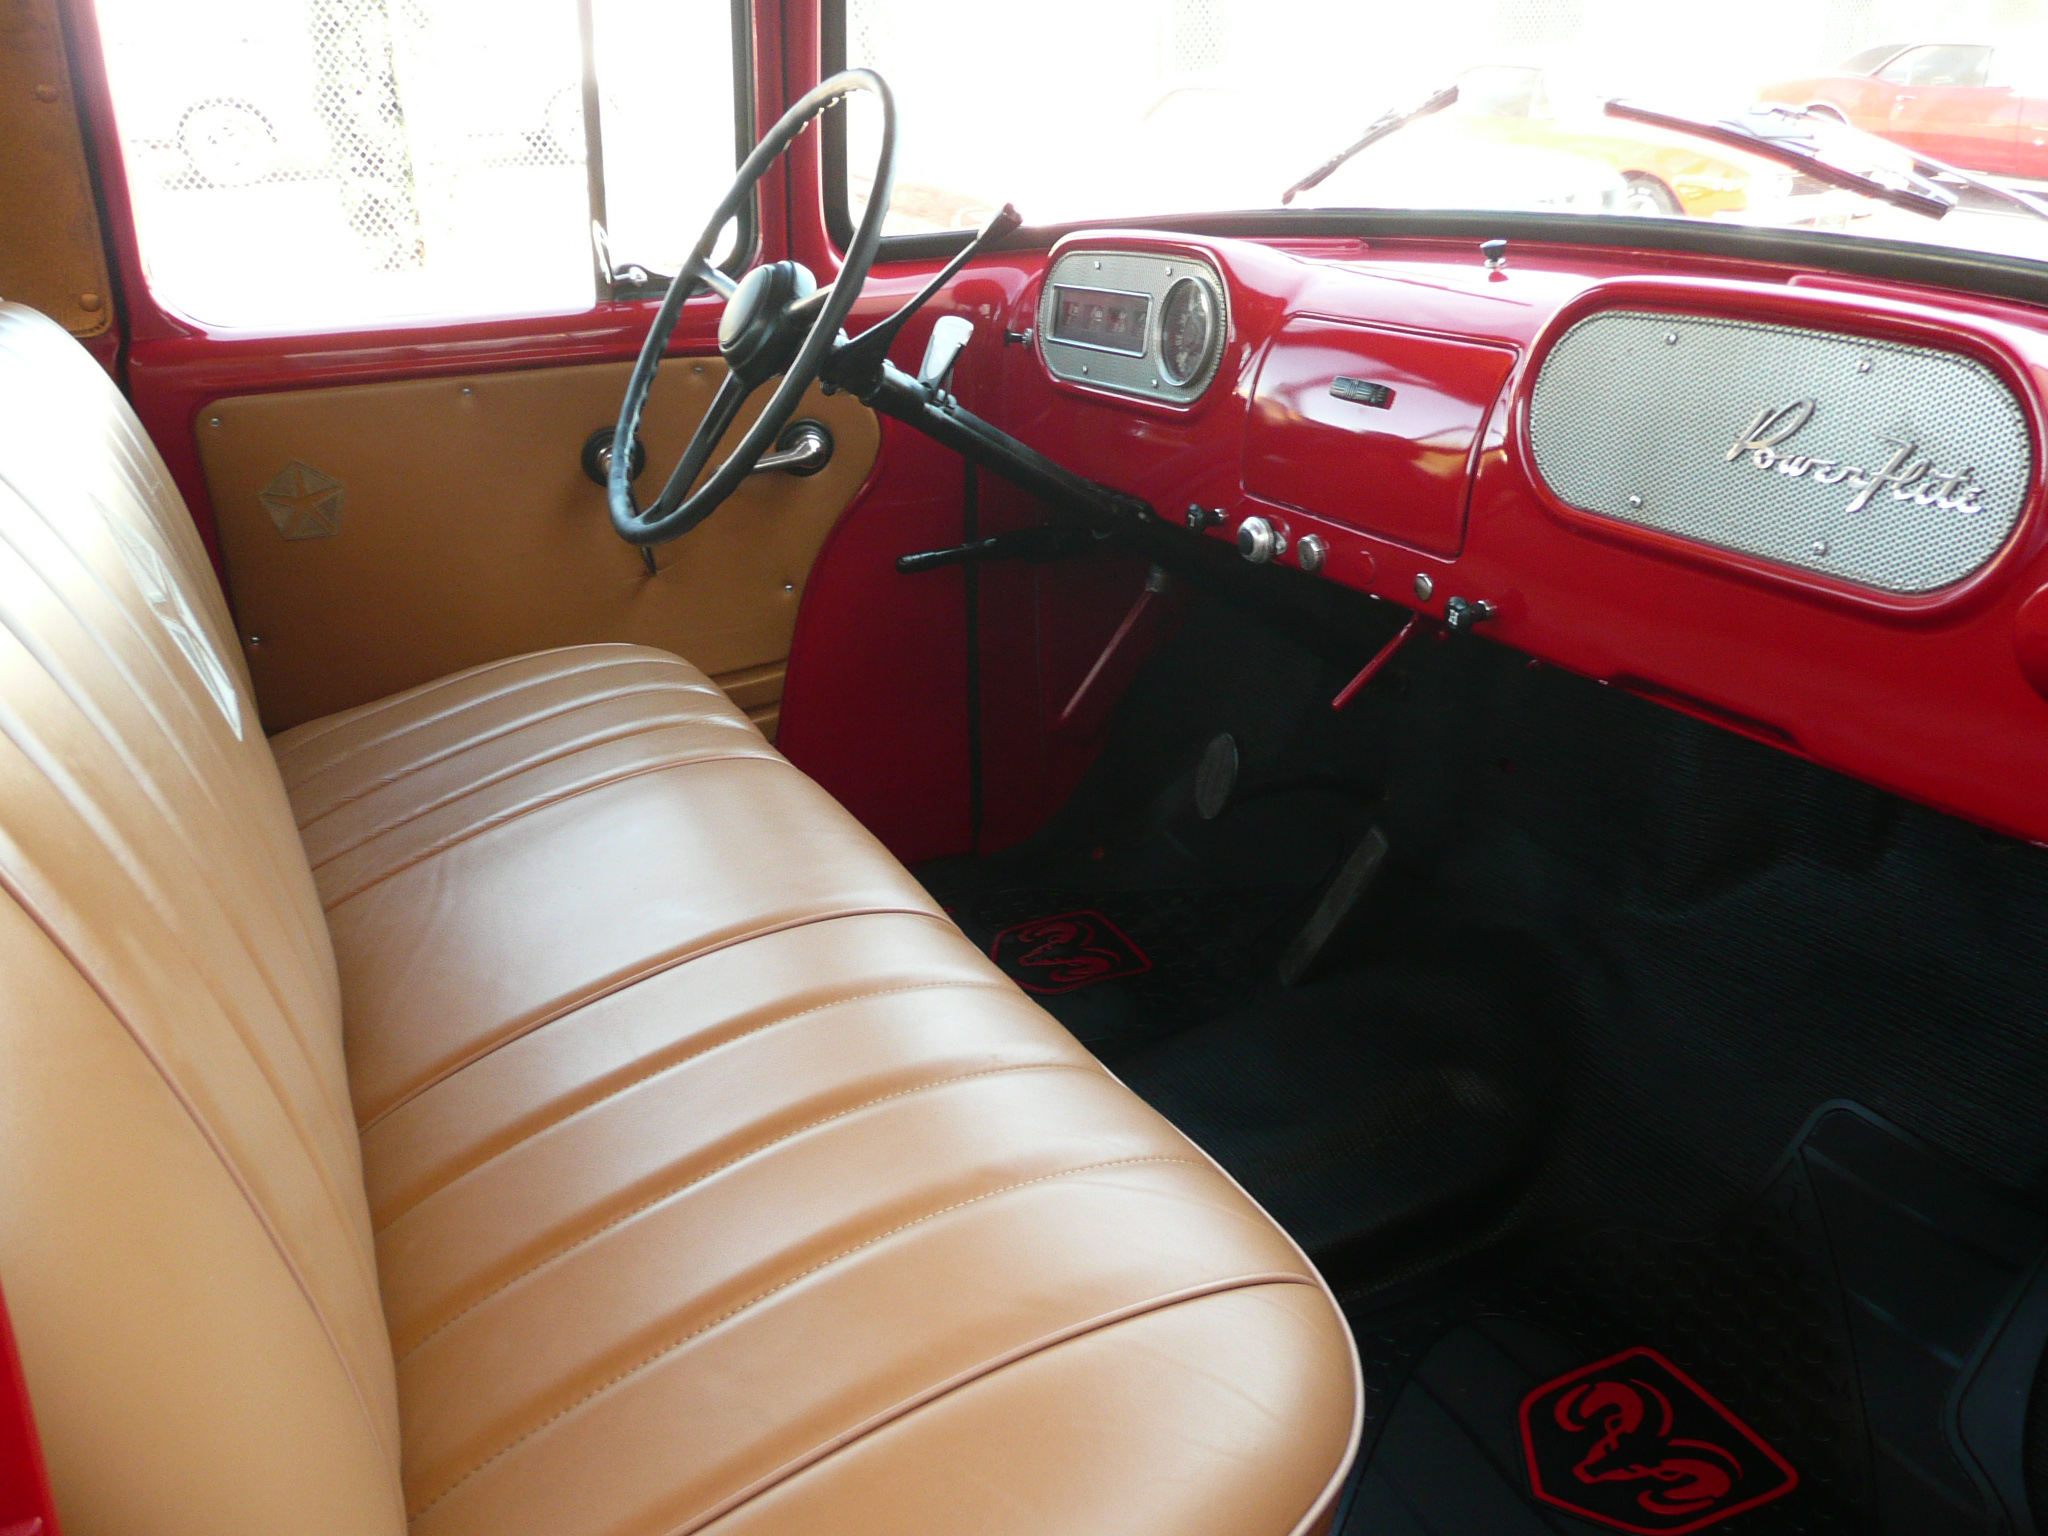 1956 DODGE CL-GL 1 1/2 TON PICKUP - Interior - 80994